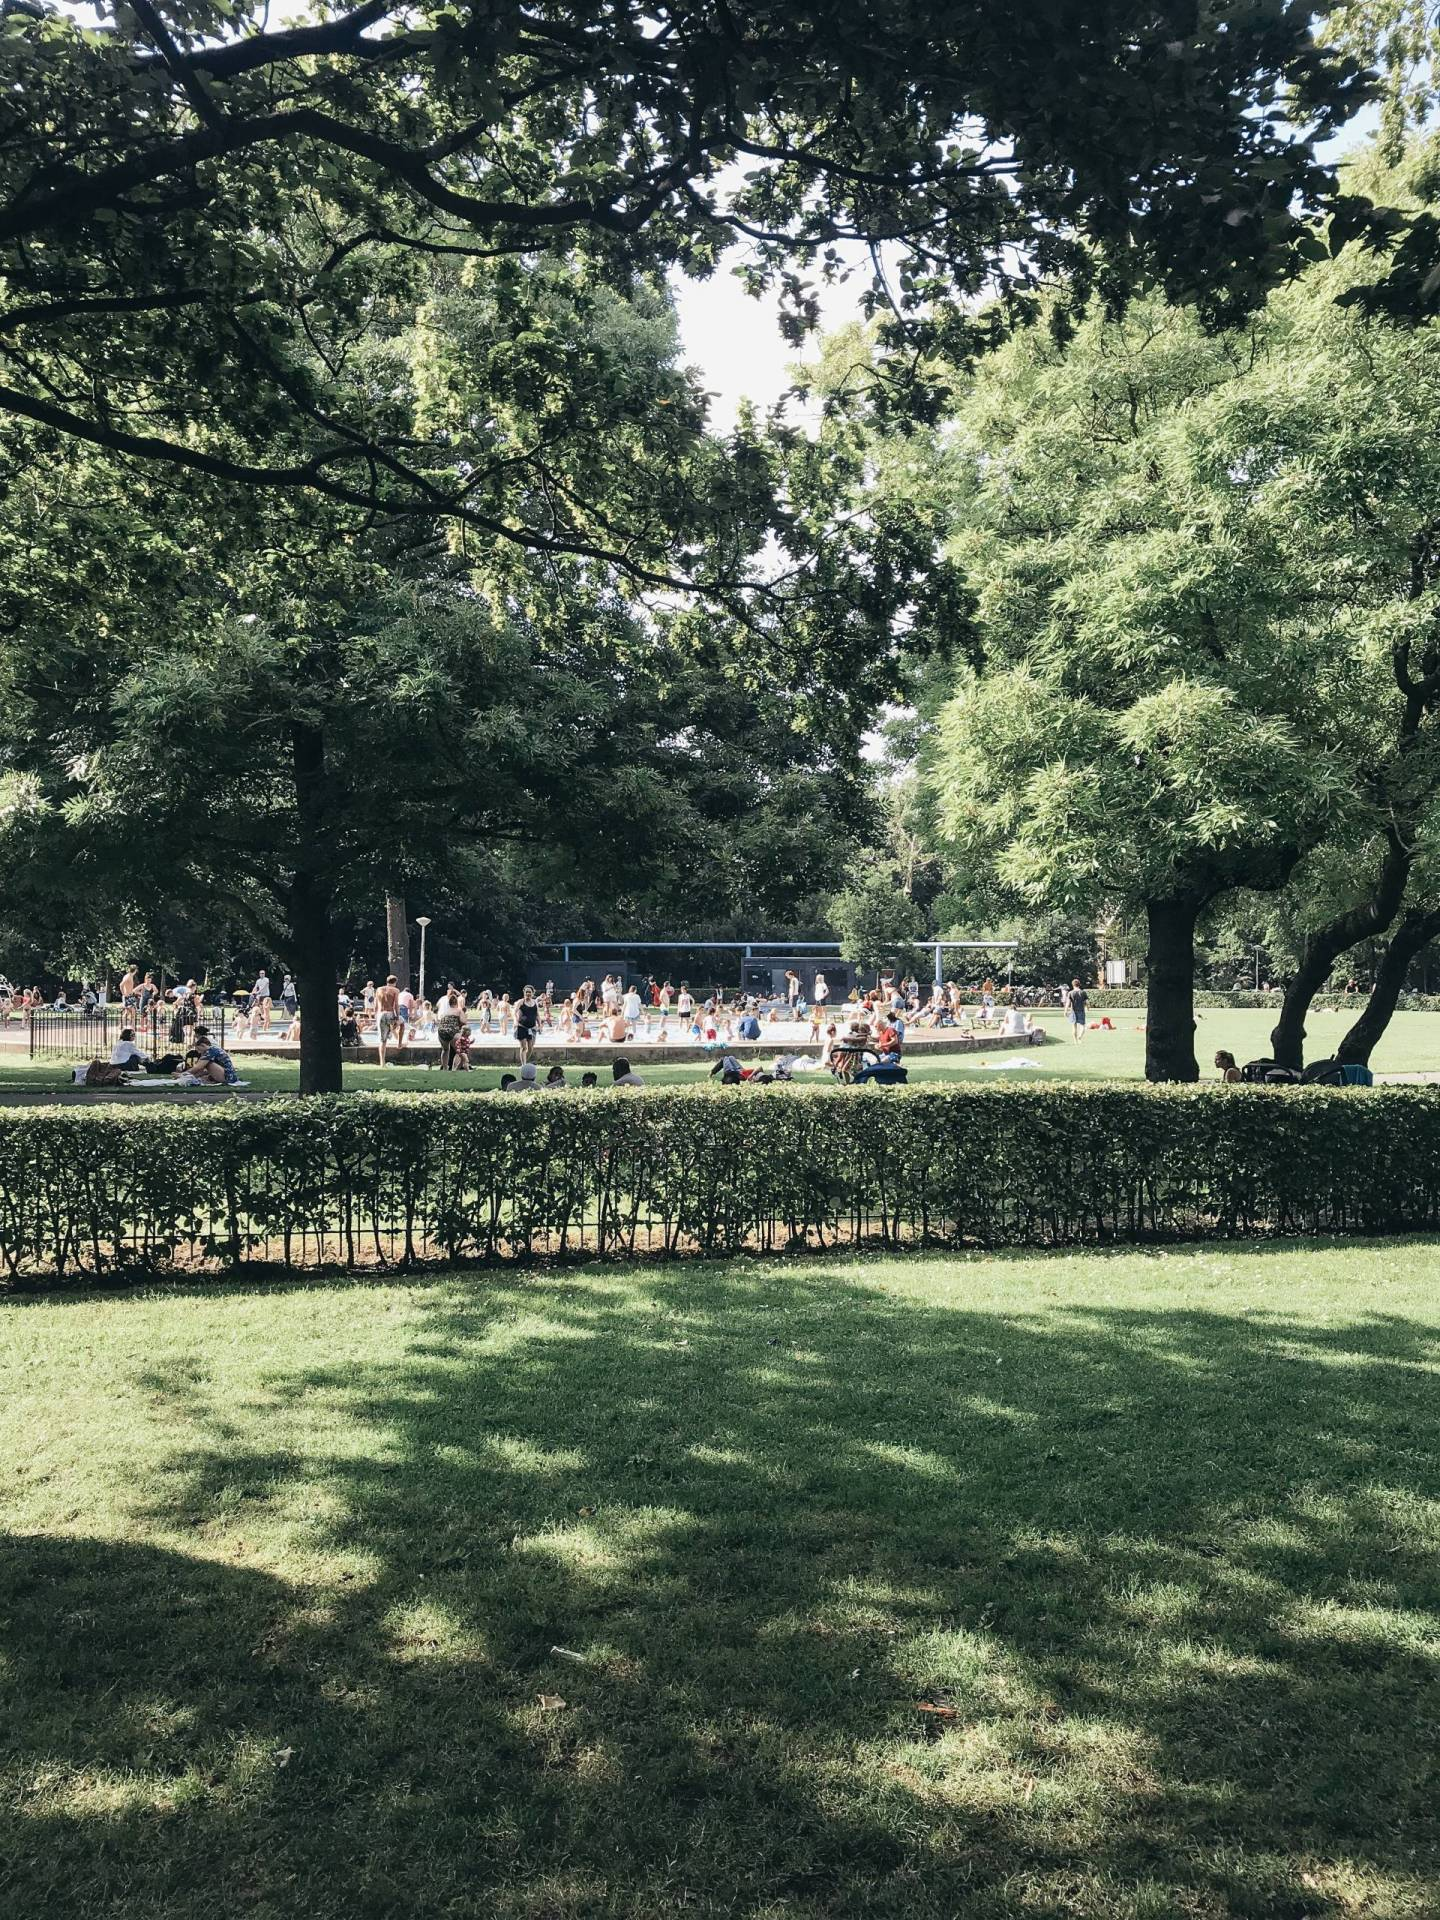 If you're visiting Amsterdam in the Summer, you have to visit Vondelpark. With multiple play areas, a large playground, and even a wading pool, it is the perfect place to beat the heat and get those wiggles out.